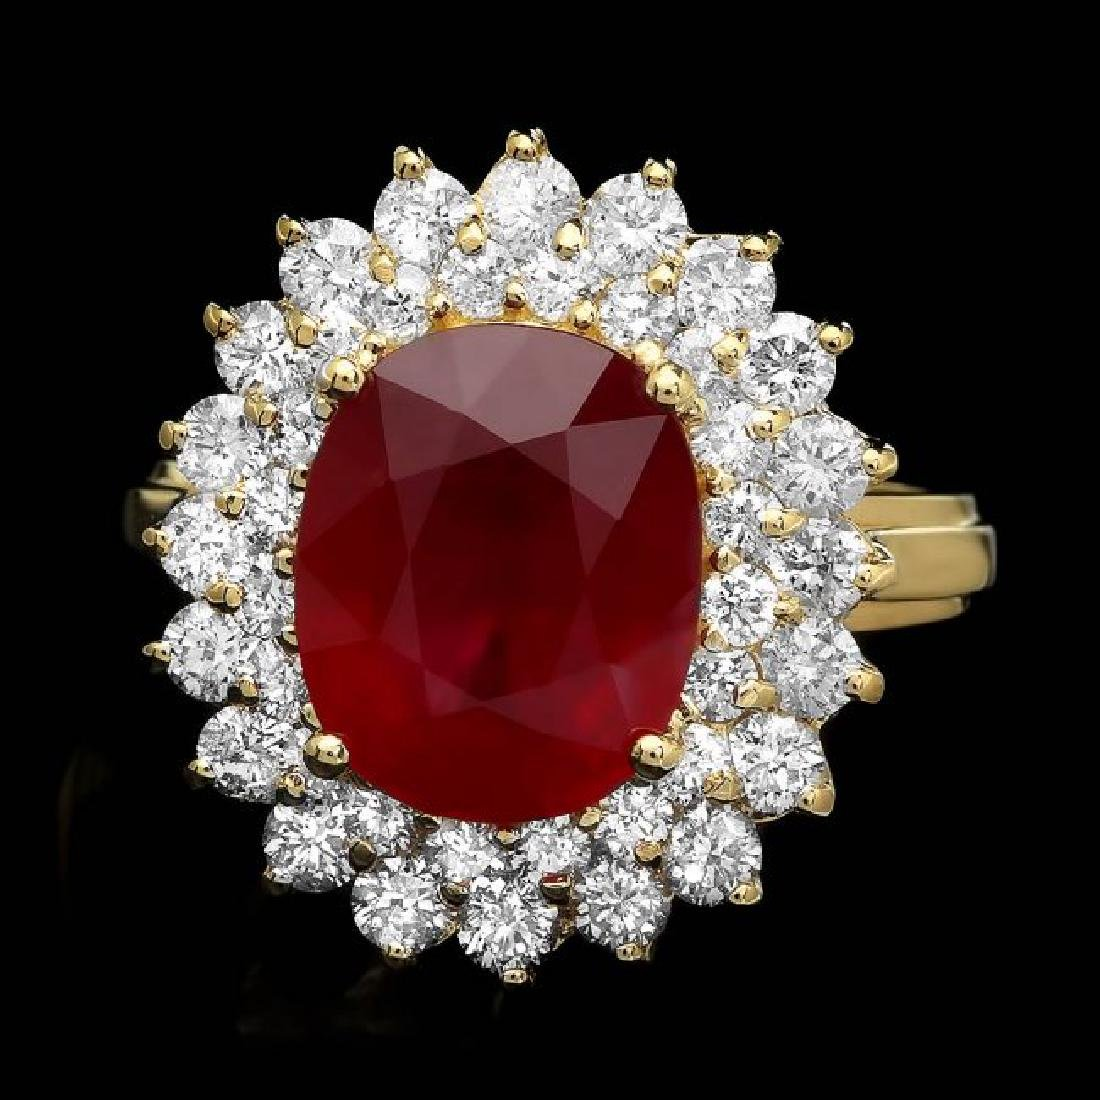 14k Yellow Gold 5.60ct Ruby 1.60ct Diamond Ring